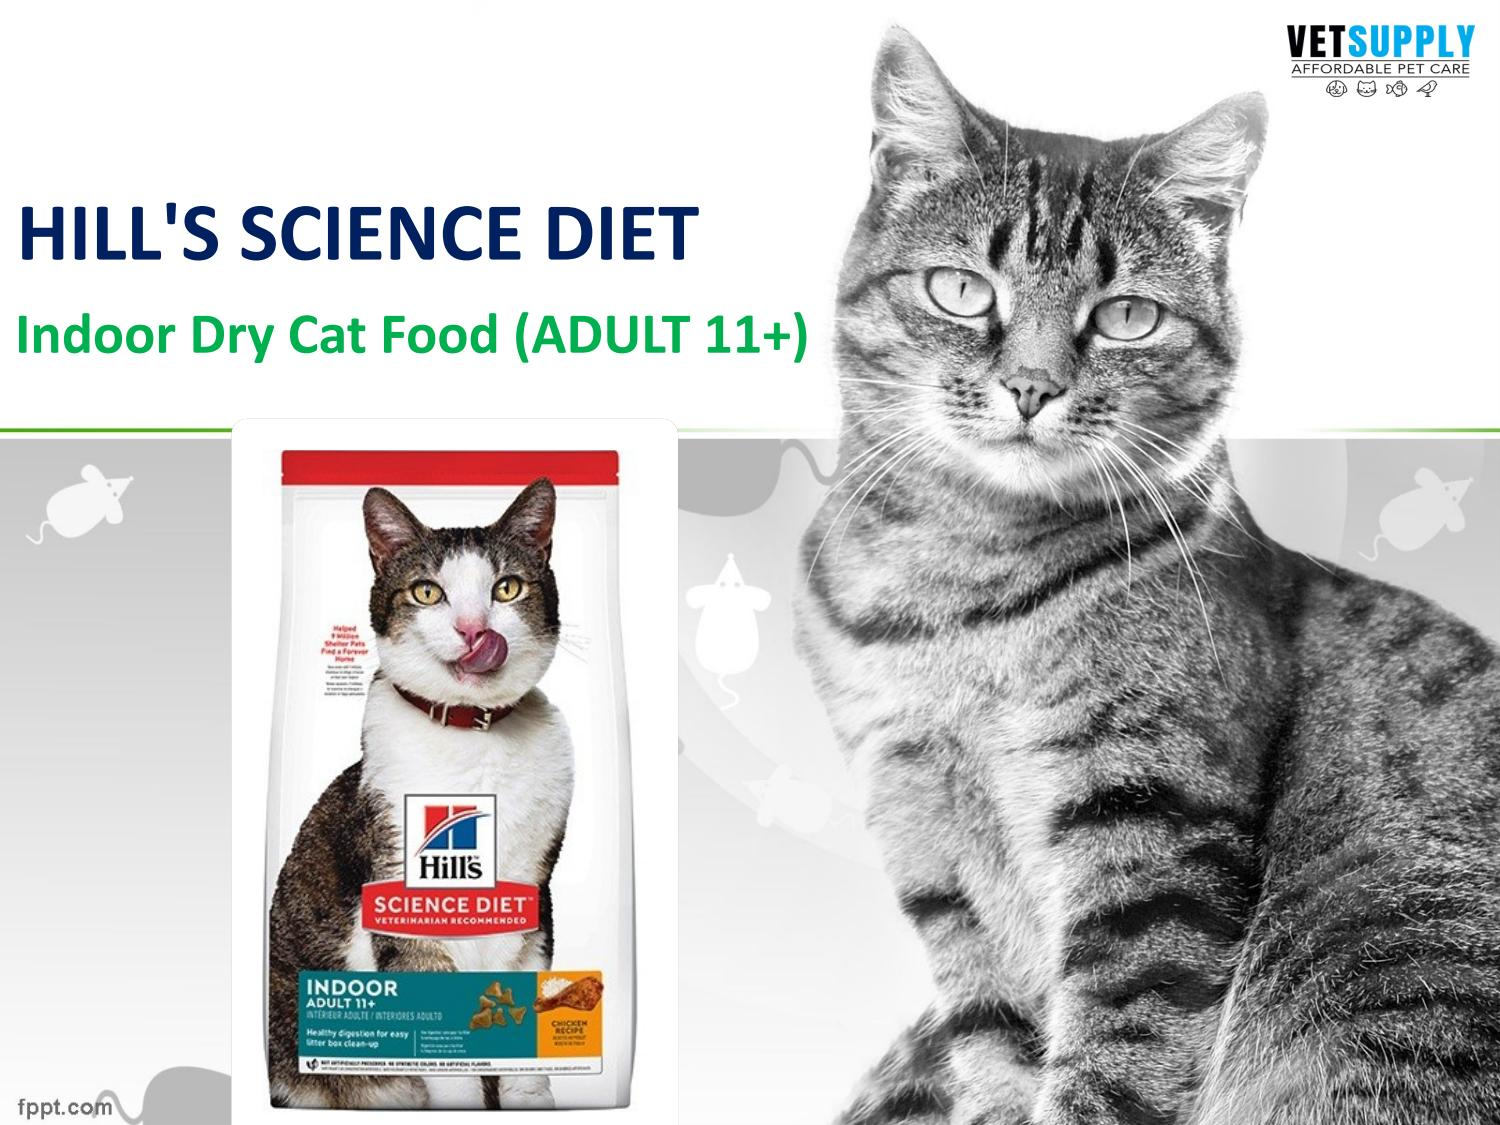 hills science diet indoor dry cat food